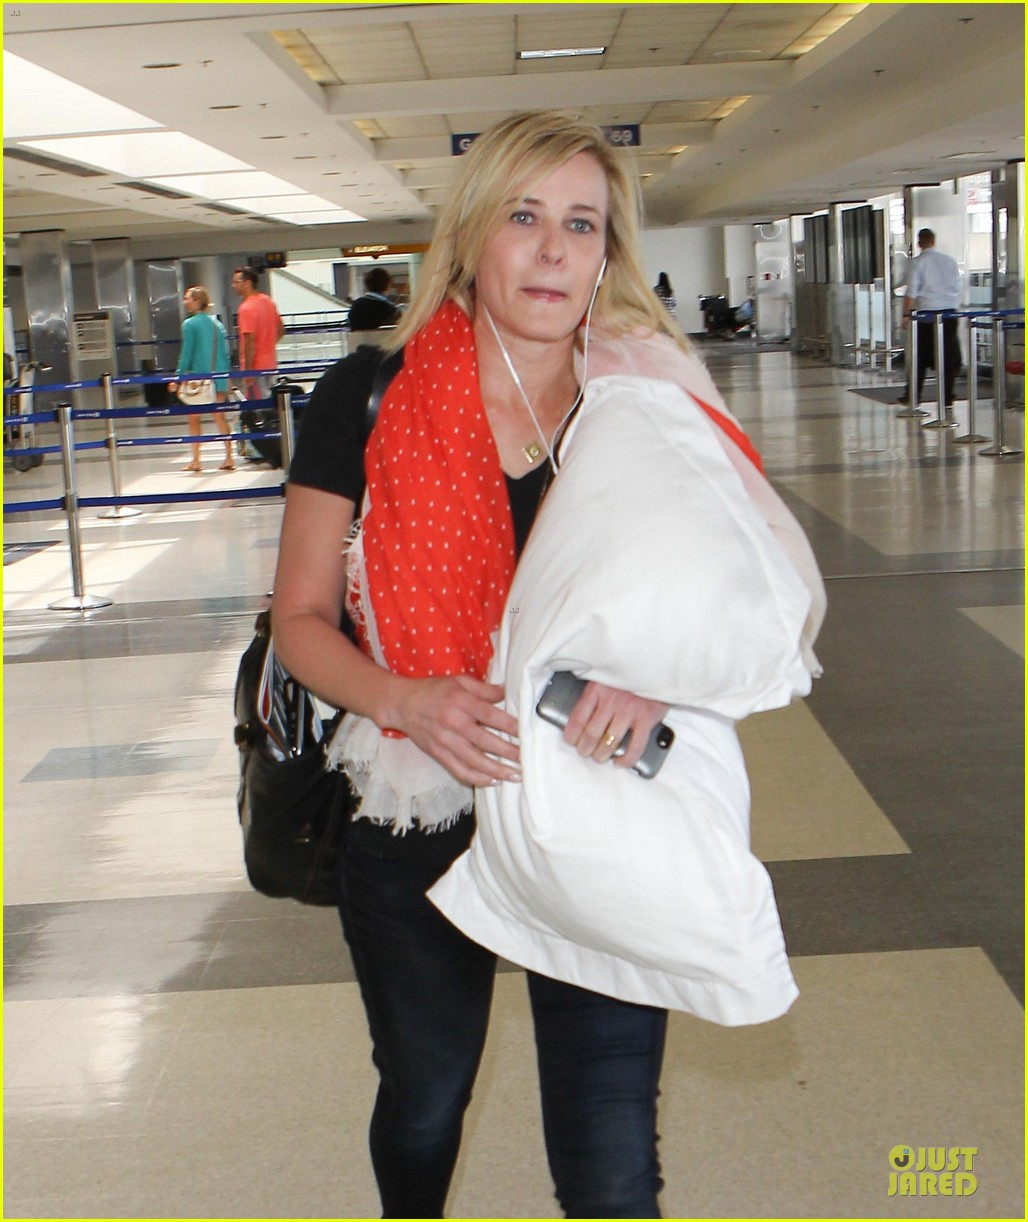 chelsea handler lax departure as comfy as possible 09